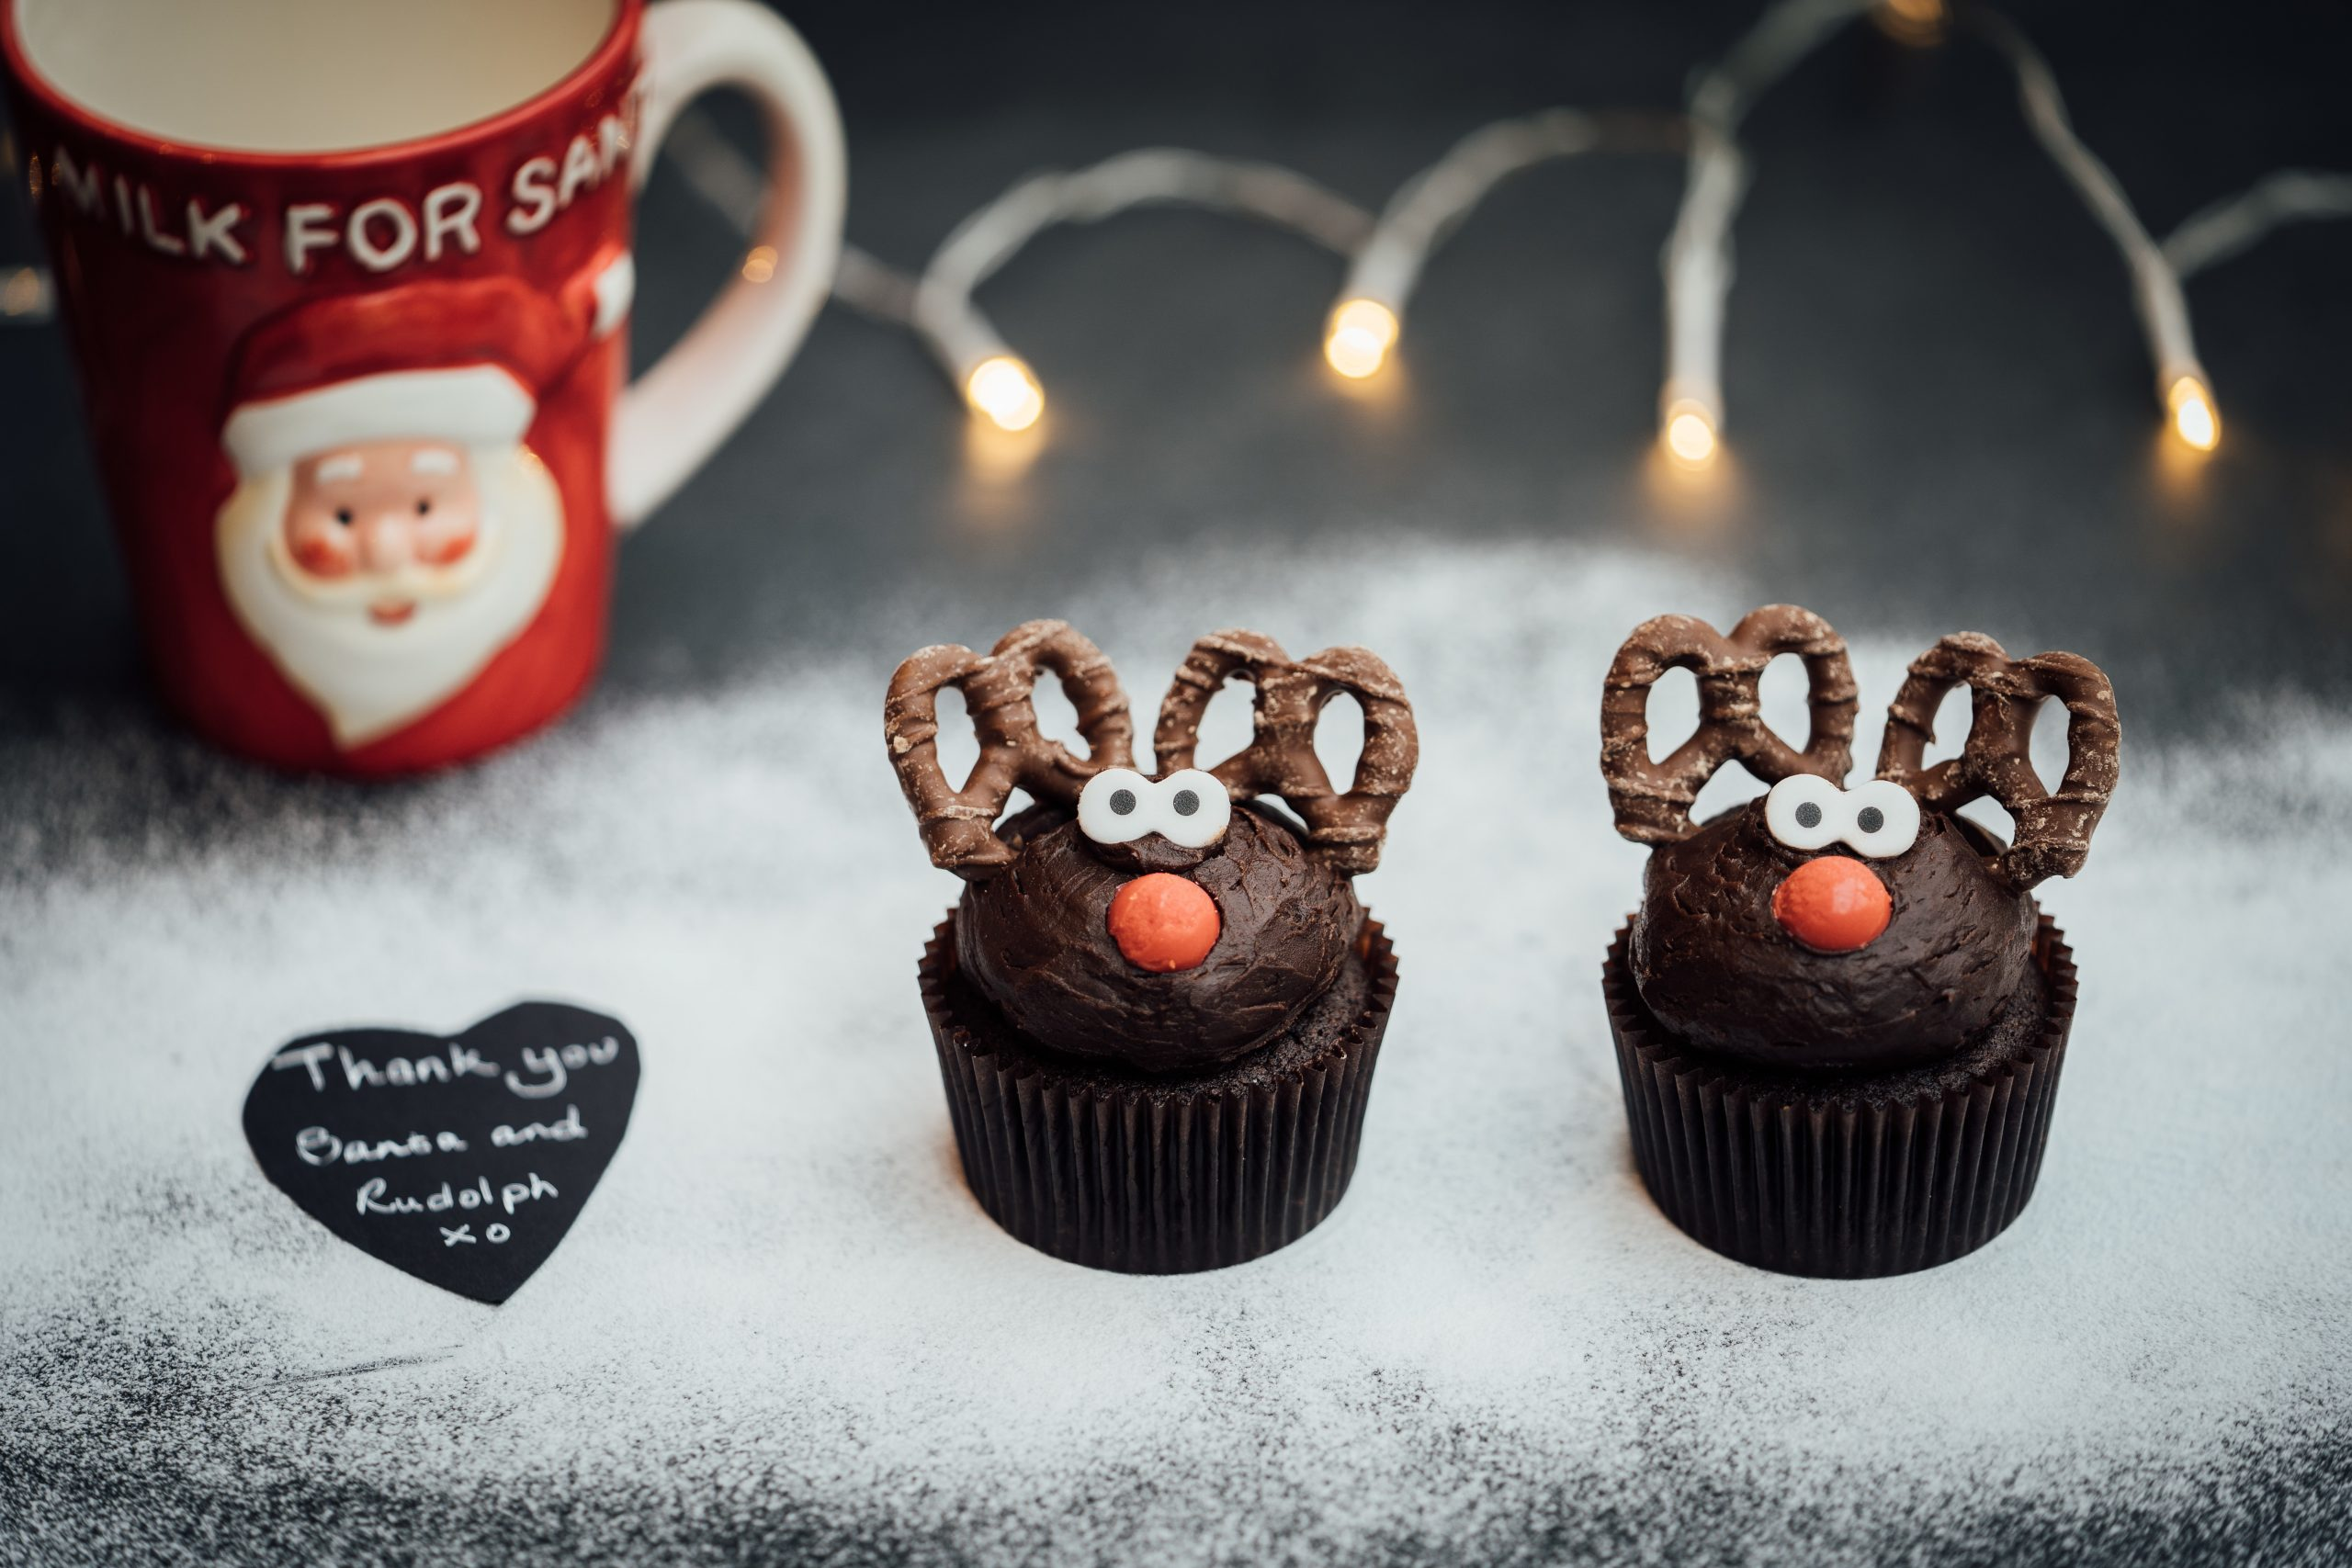 Genesis Limited Edition Mince Pies and Reindeer Cup Cakes bring Christmas cheer